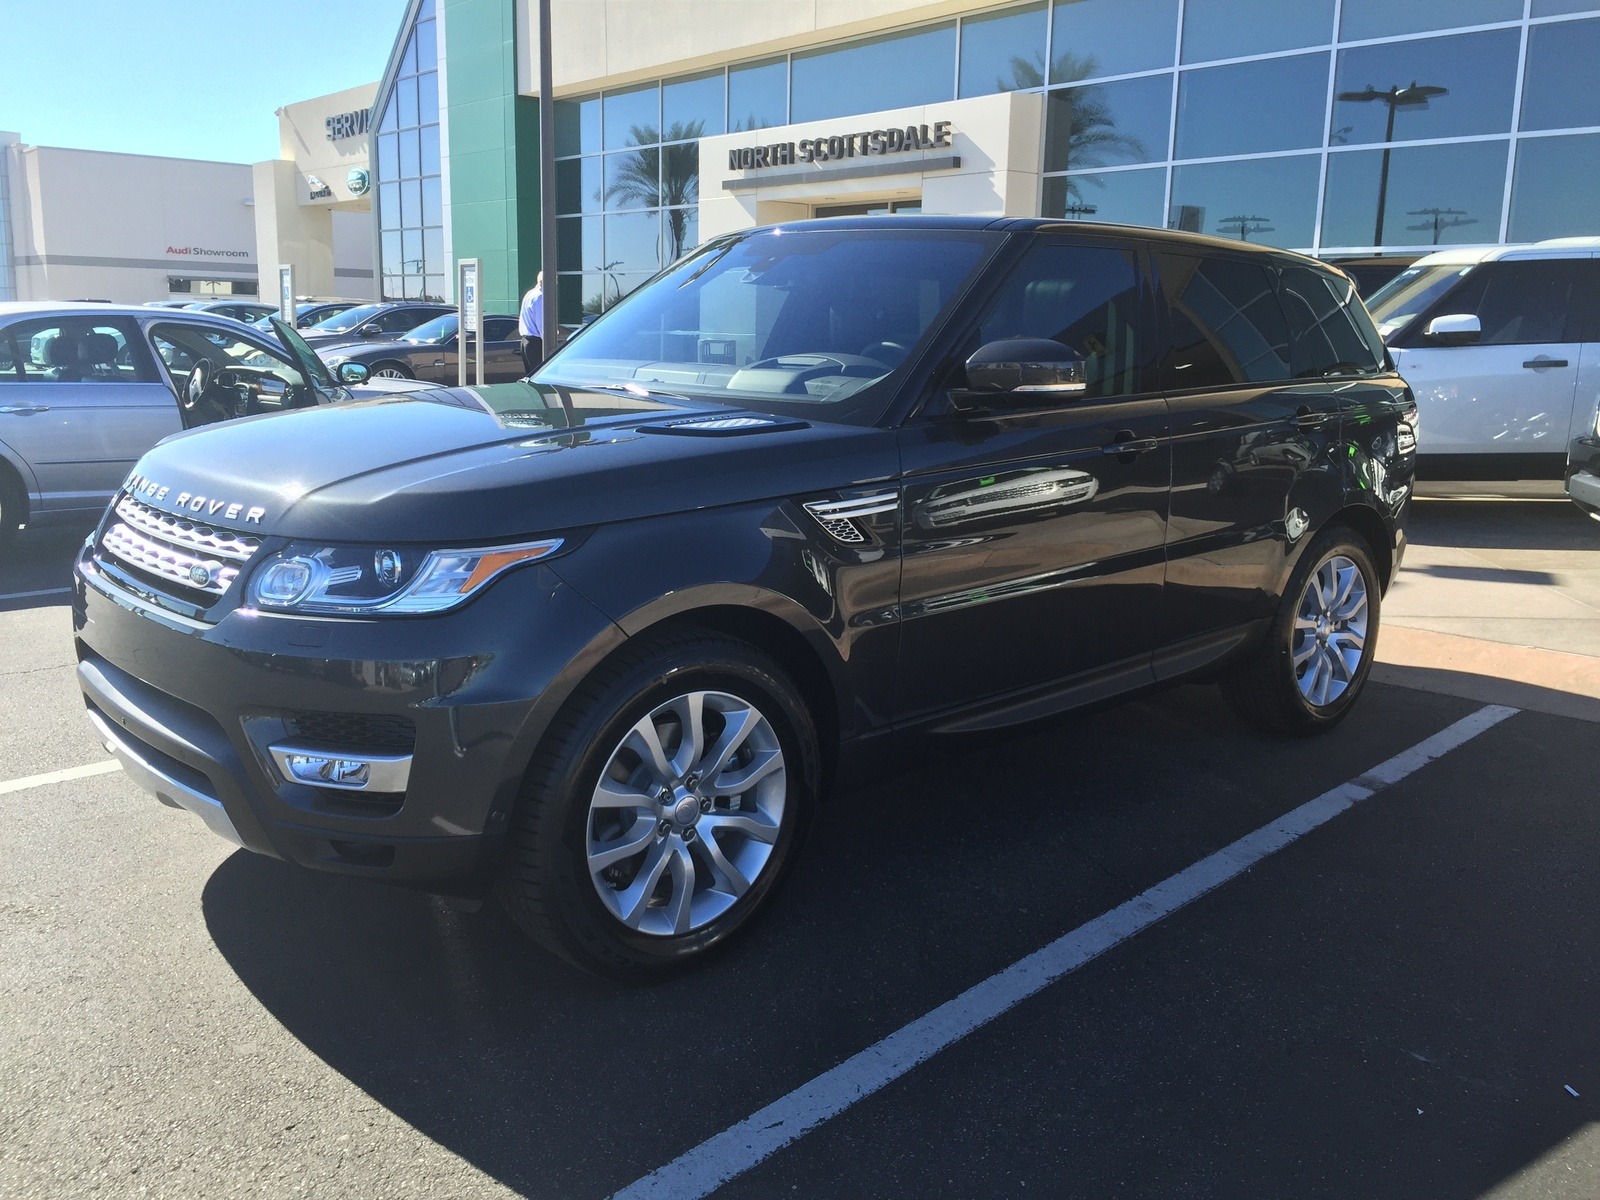 Picture of 2016 Land Rover Range Rover Sport HSE